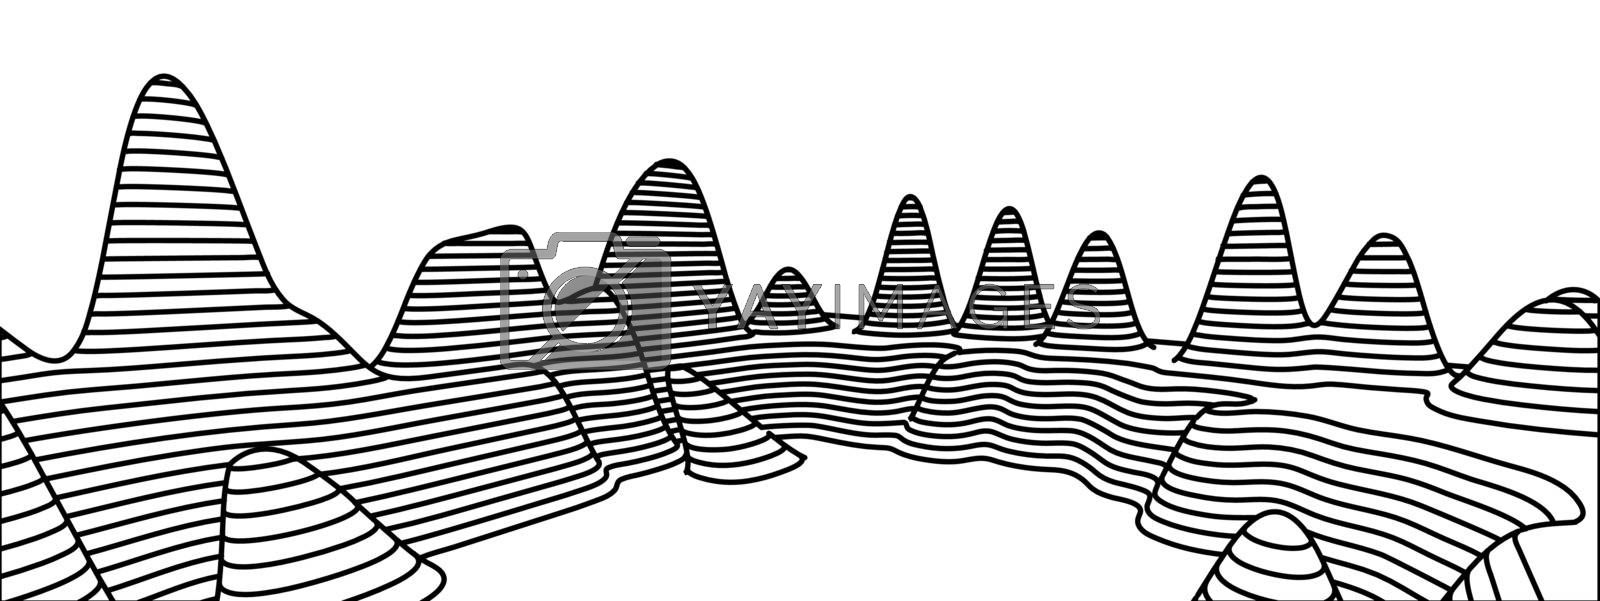 Topographical map of the locality, vector illustration with lines